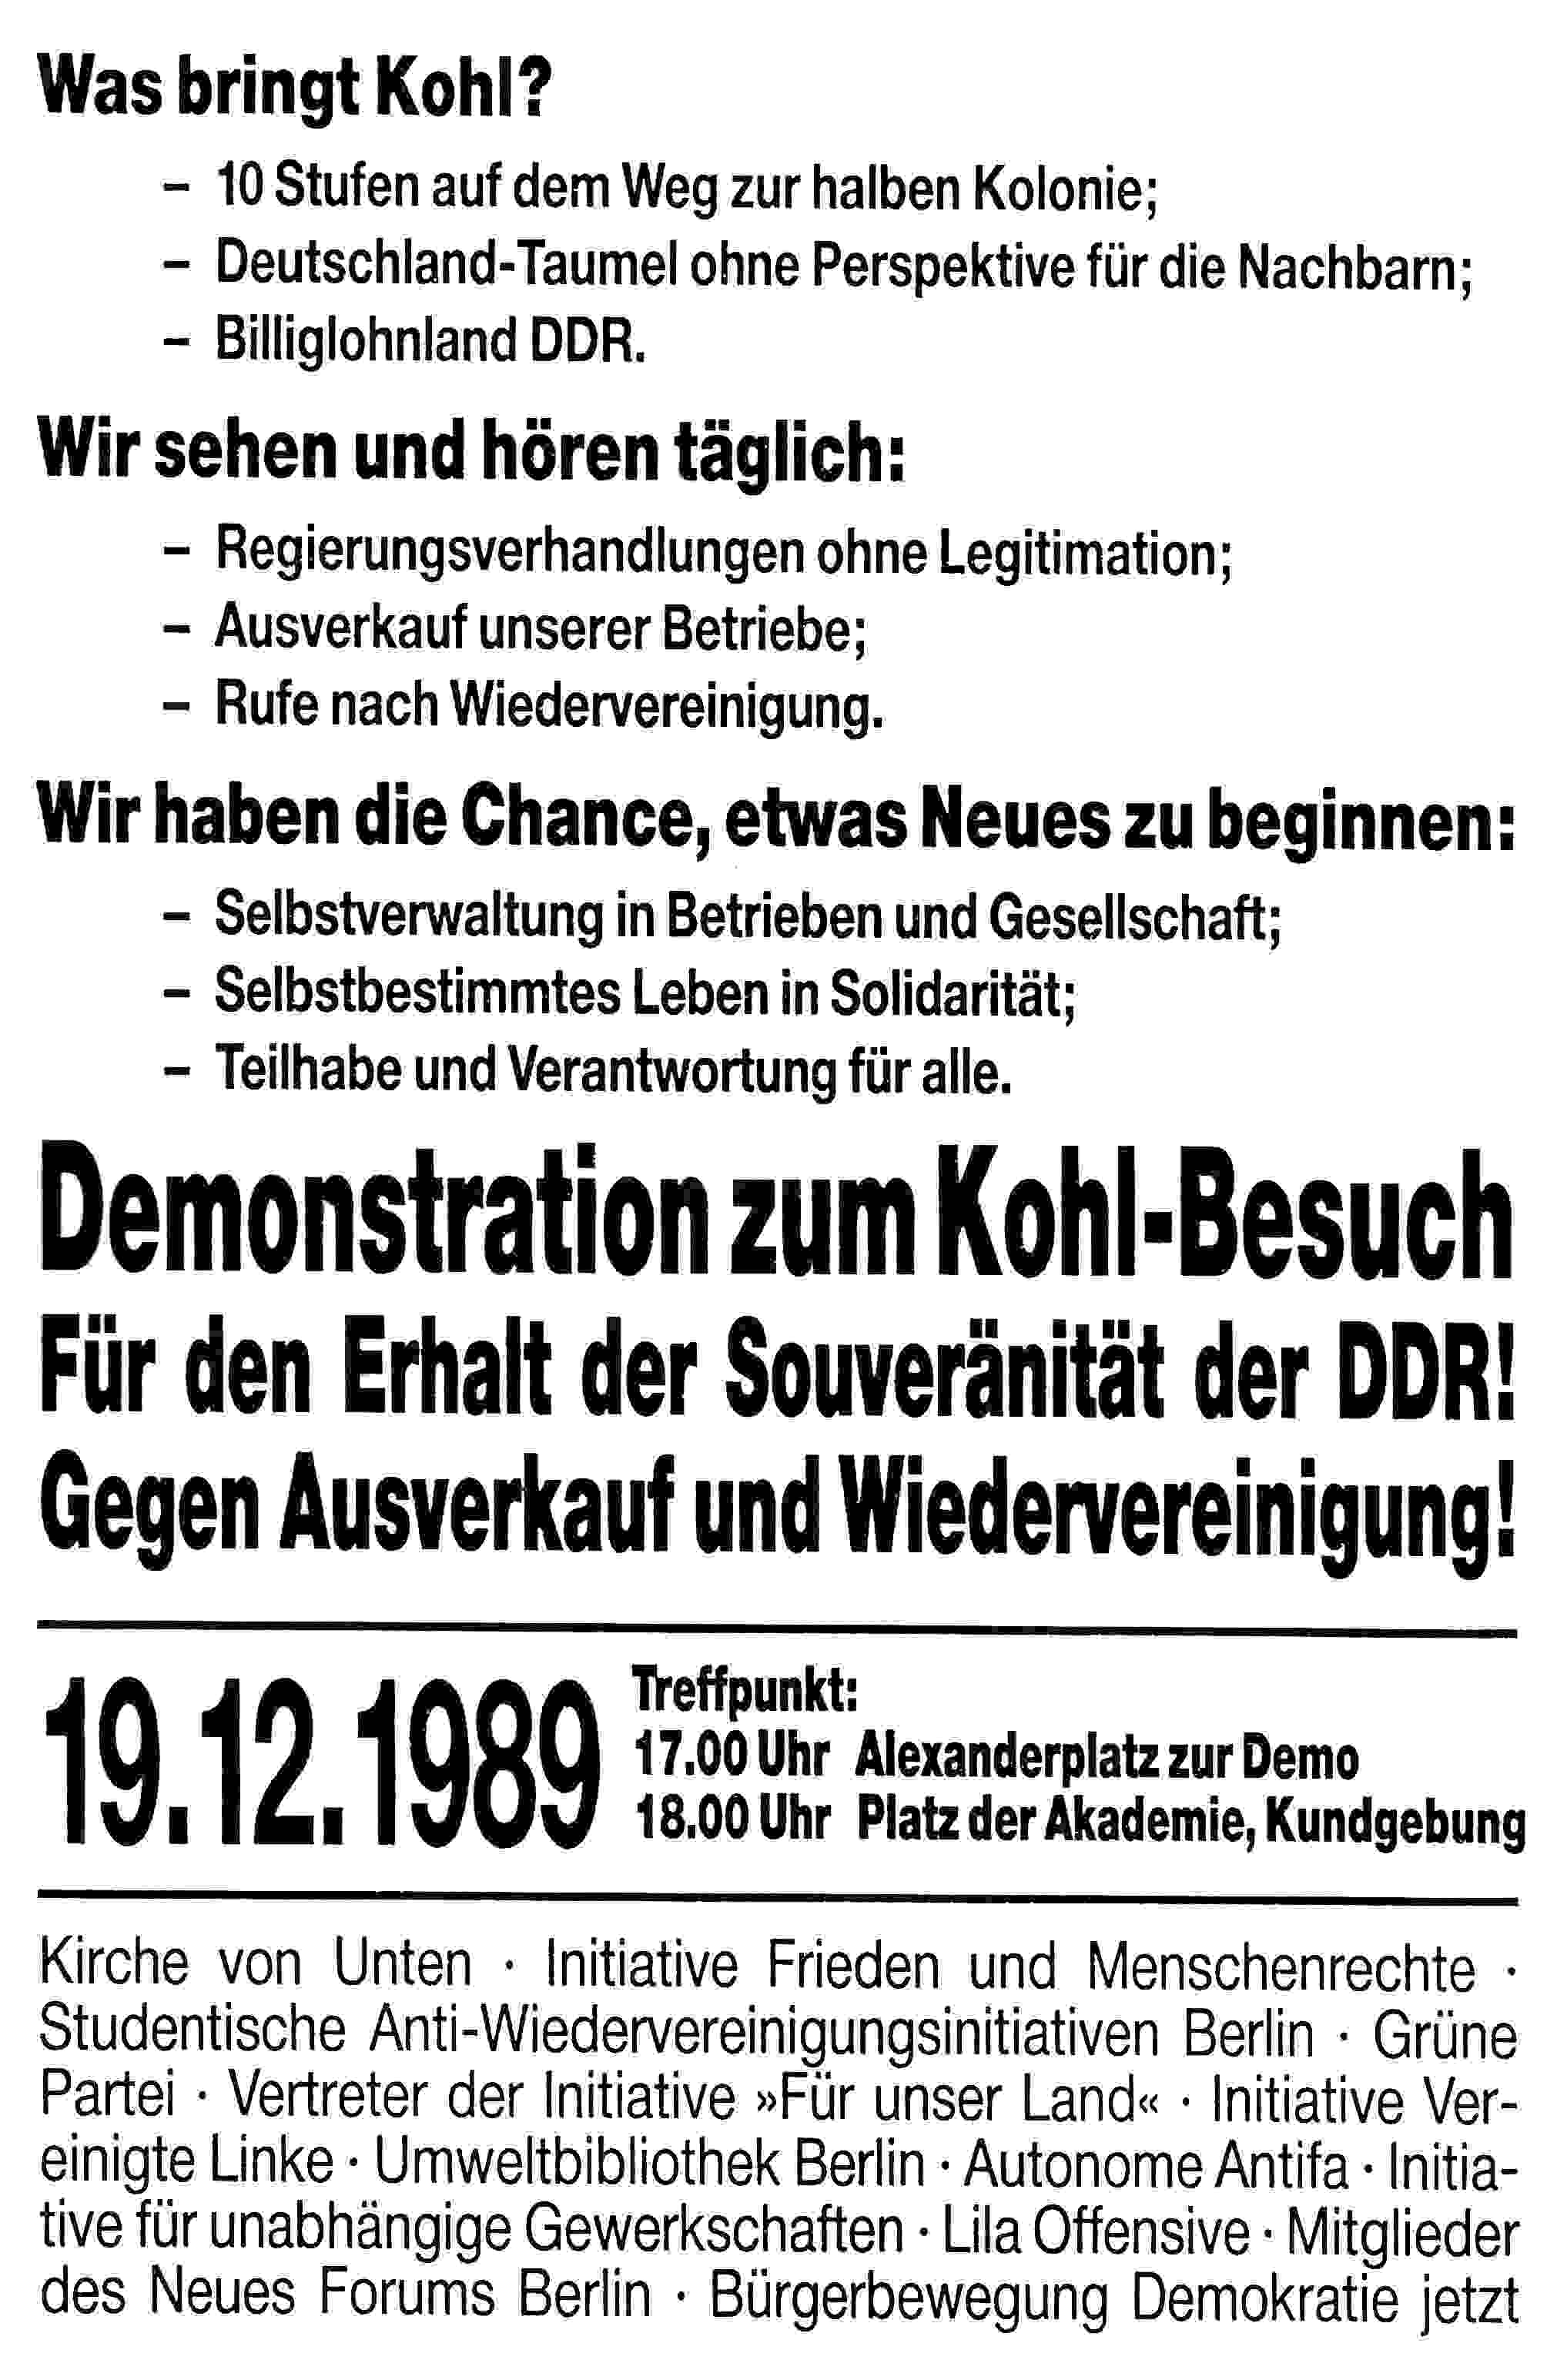 Demonstration in Berlin zum Kohlbesuch in Dresden